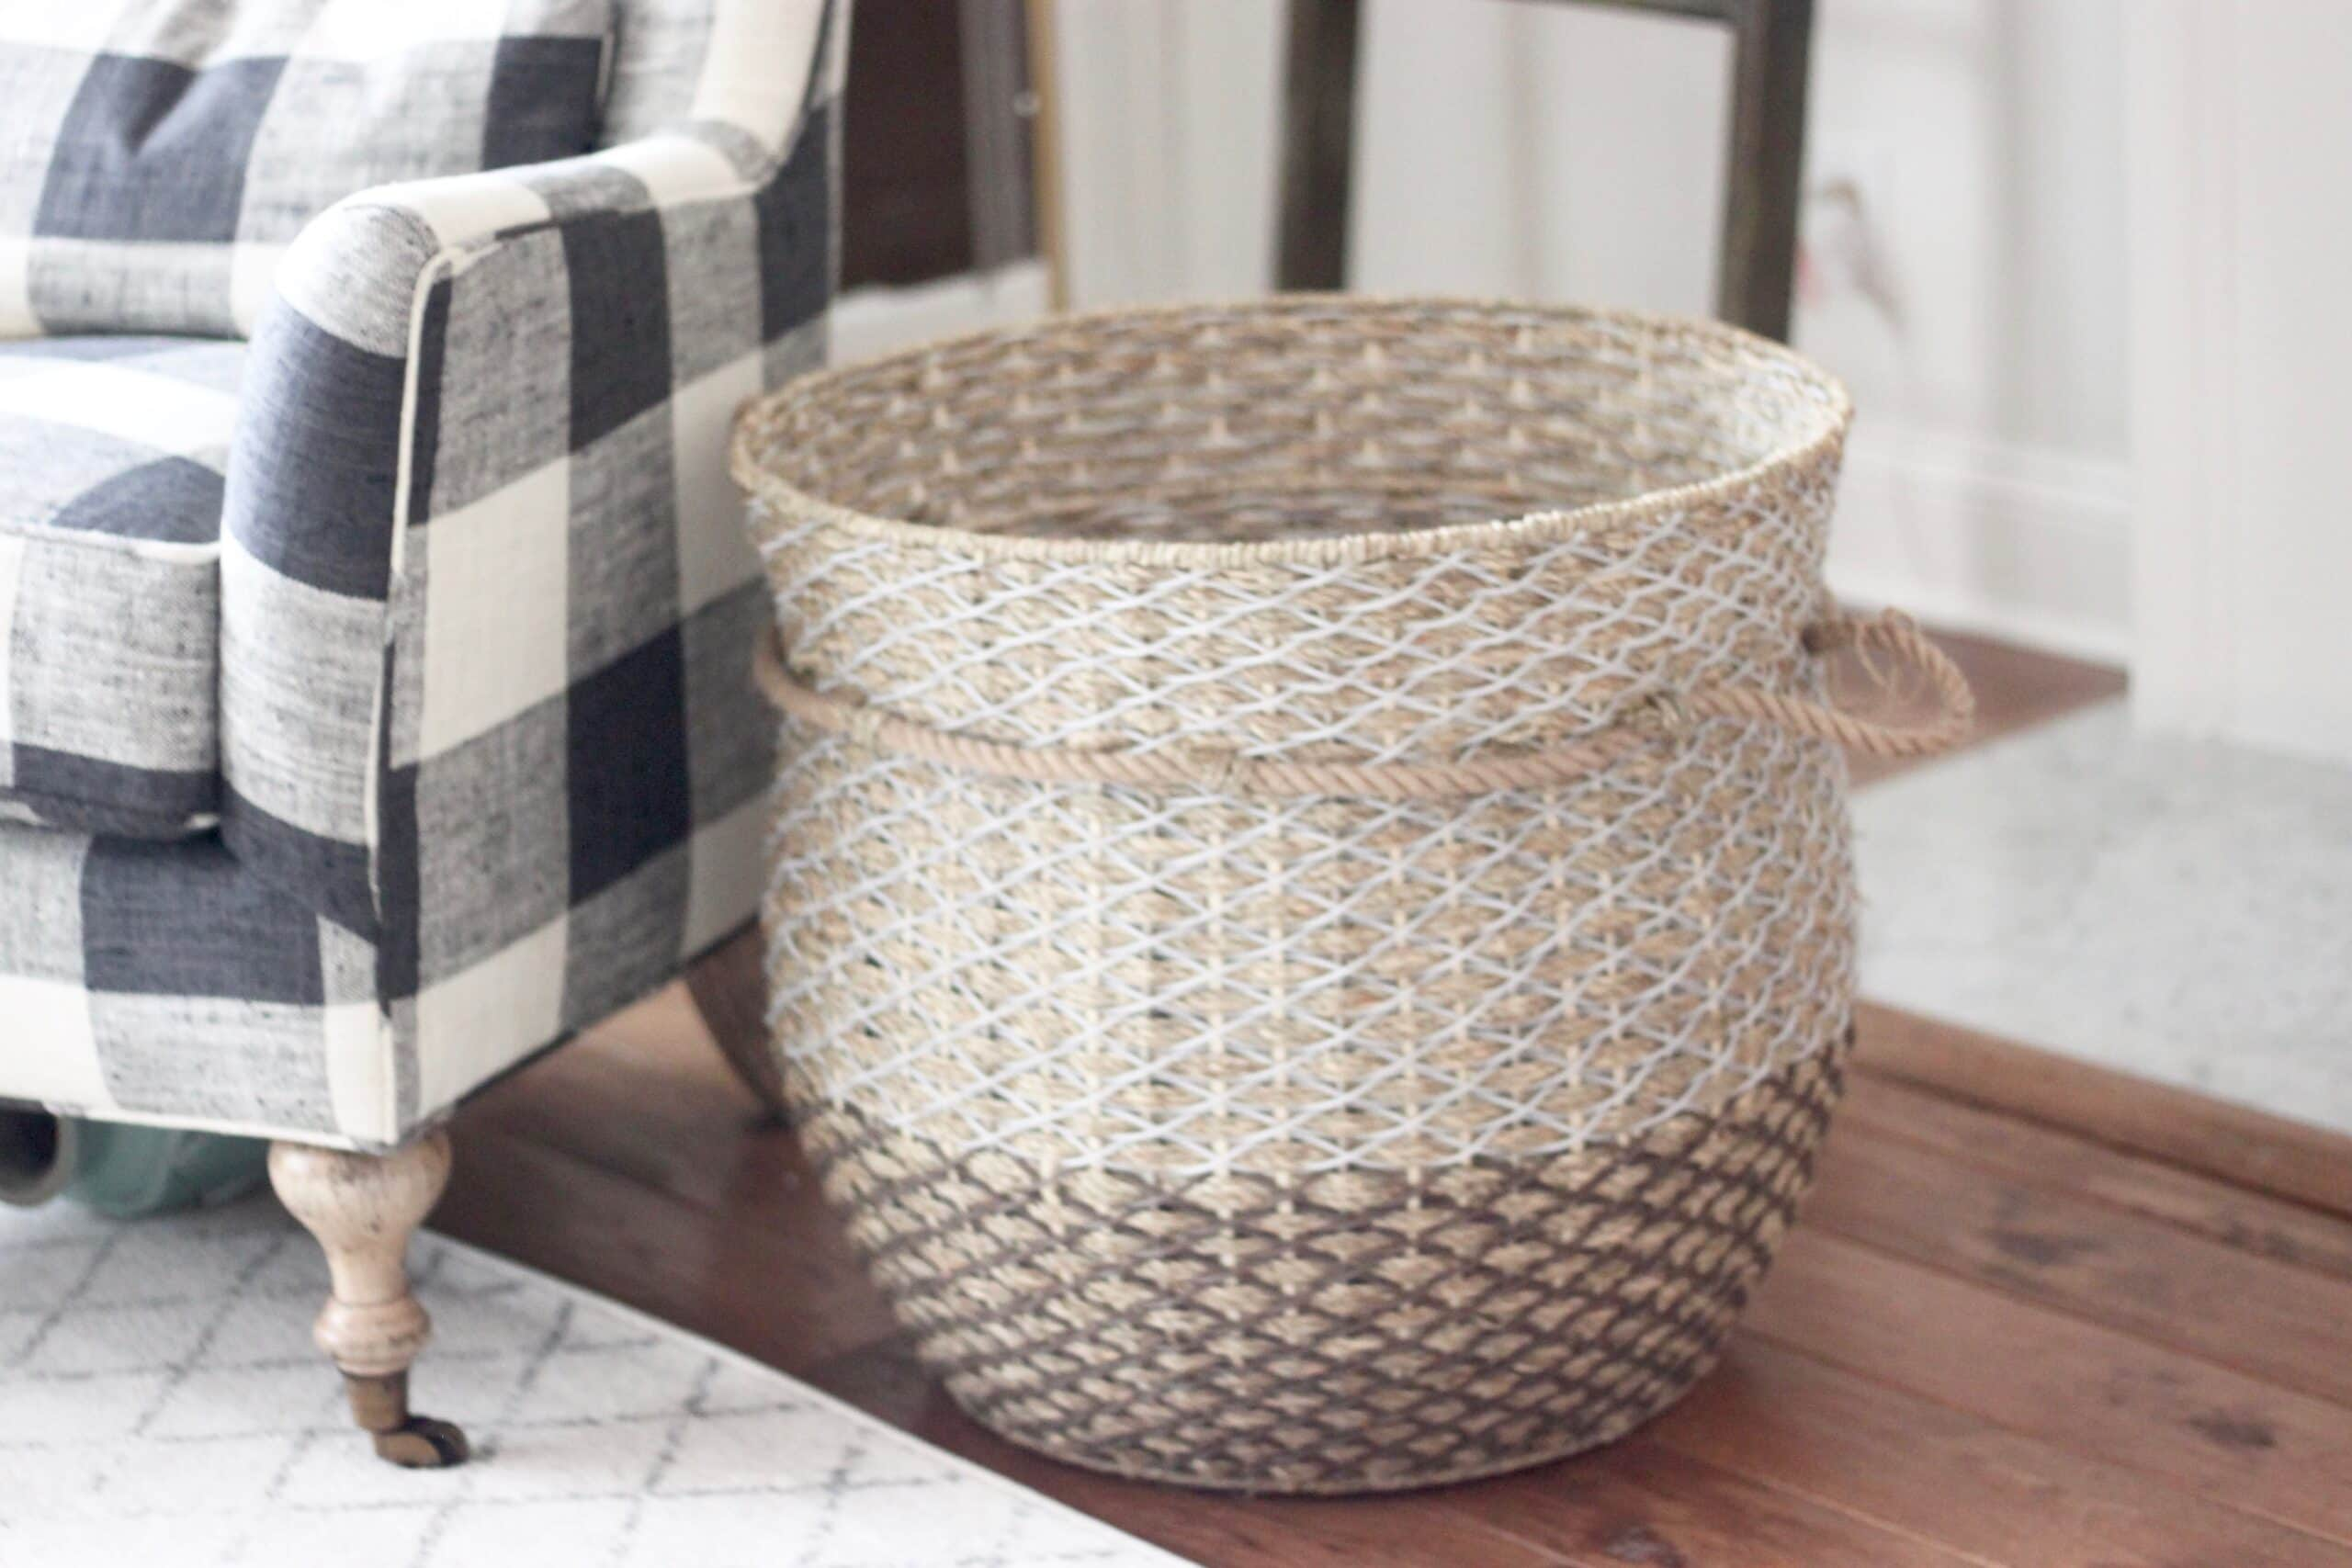 It is time to get organized! These organization ideas are going to help you get your home nice and tidy and they are simple and stylish! See more at https://ablissfulnest.com/ #Storage #Organization #OrganizingIdeas